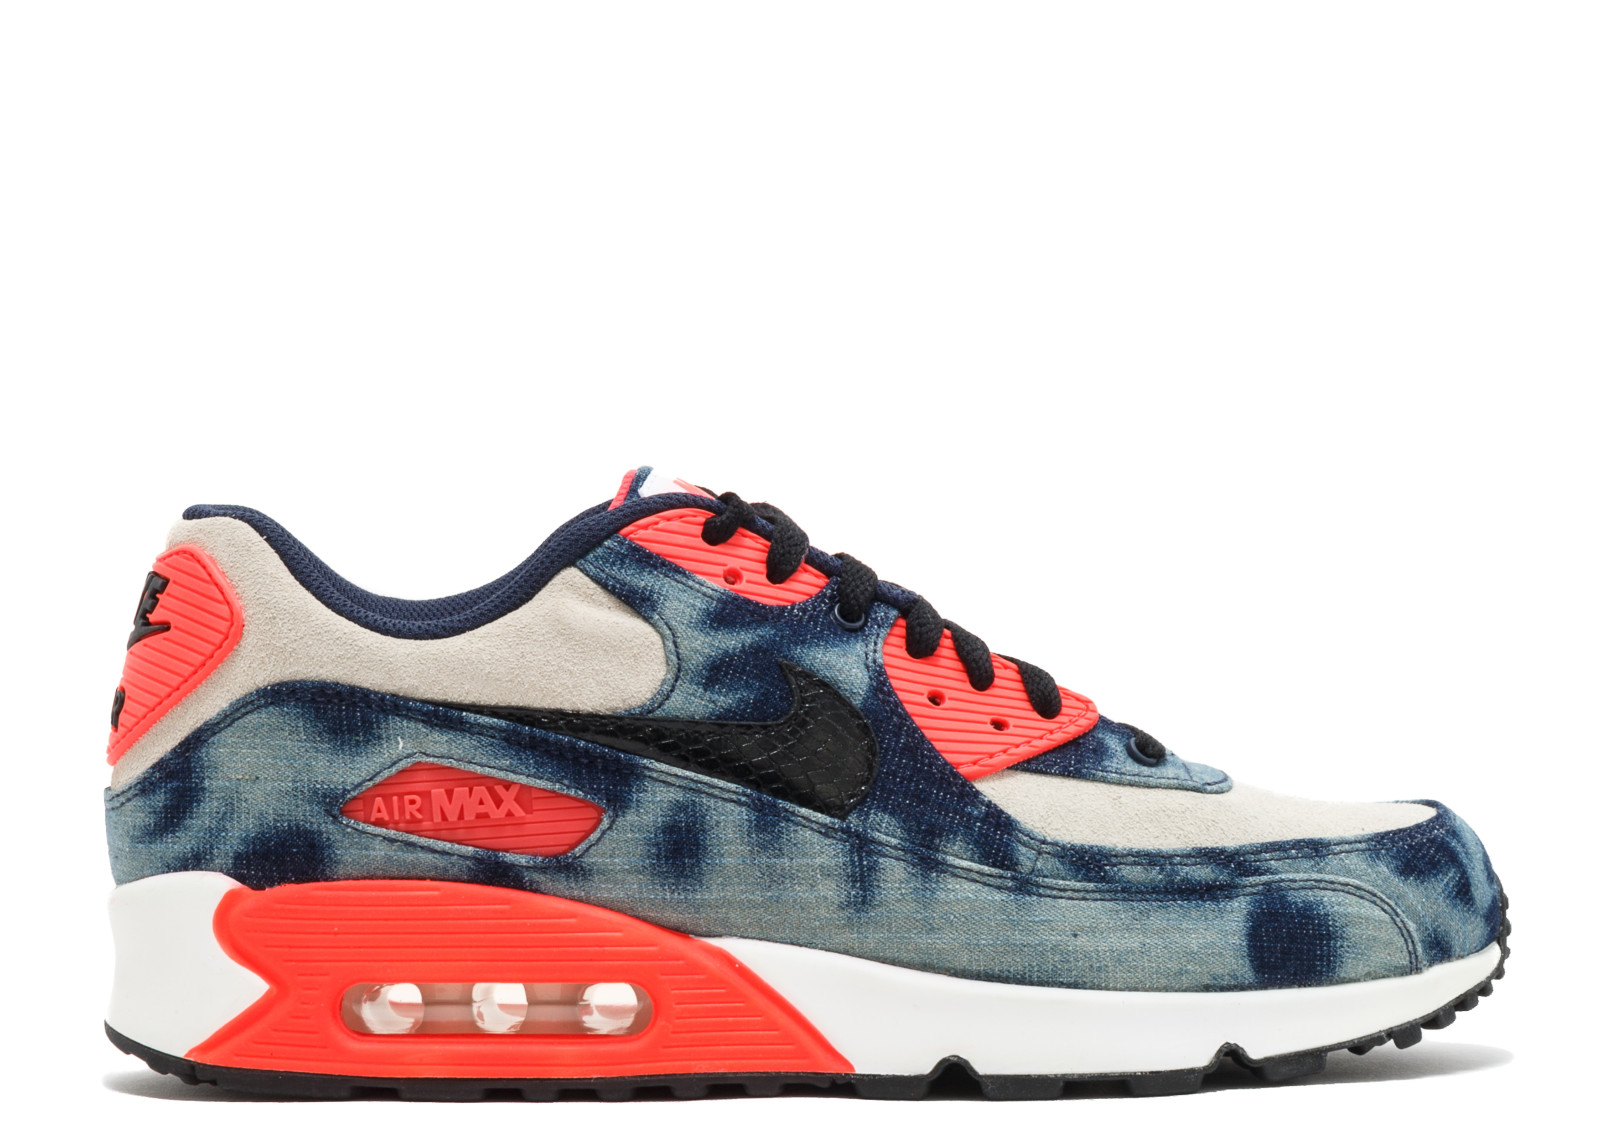 official photos 150b4 64515 Nike - Men - Air Max 90 Dnm Qs  Infrared Washed Denim  - 700875-400 - Size  10.5